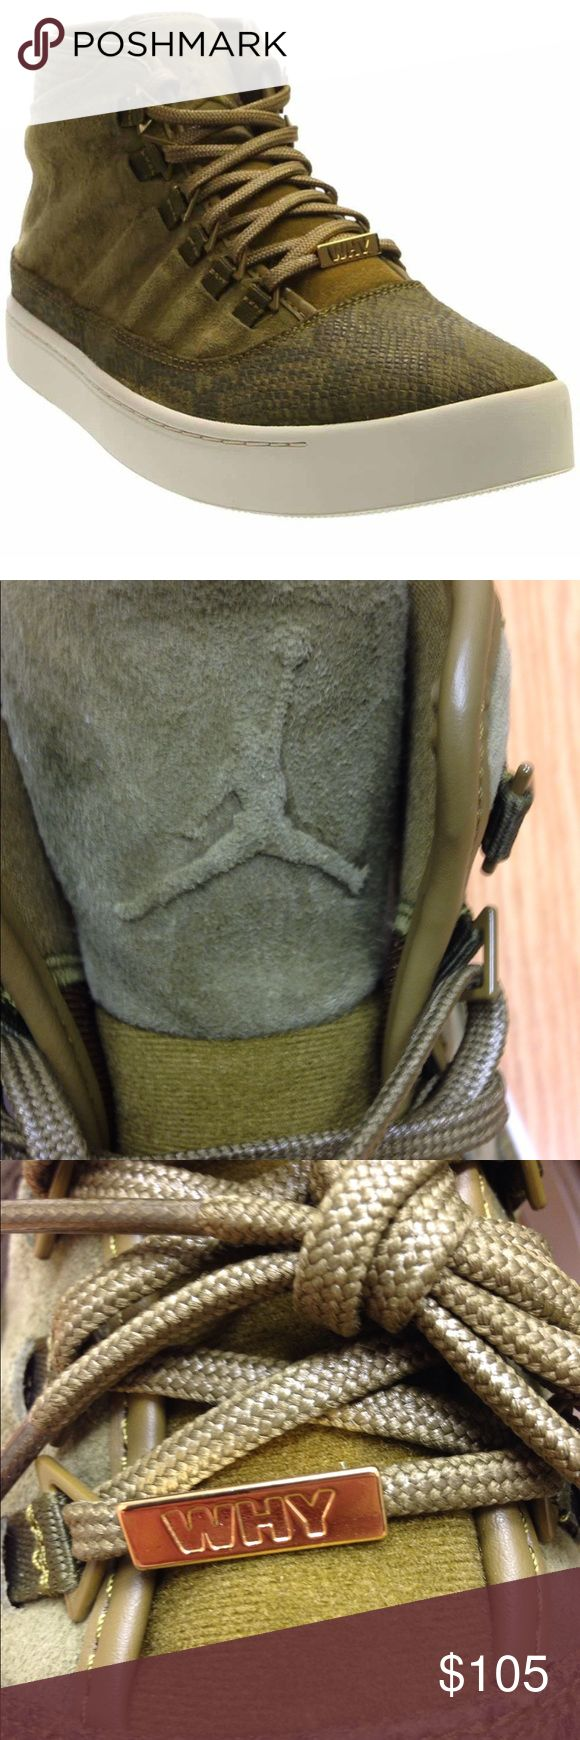 Jordan Westbrook sz 12- olive green Jordan Westbrook size 12 No box Pet free smoke free home This size no longer available on Amazon or eBay.  Bundle for a greater discount.  Thanks for looking! Jordan Shoes